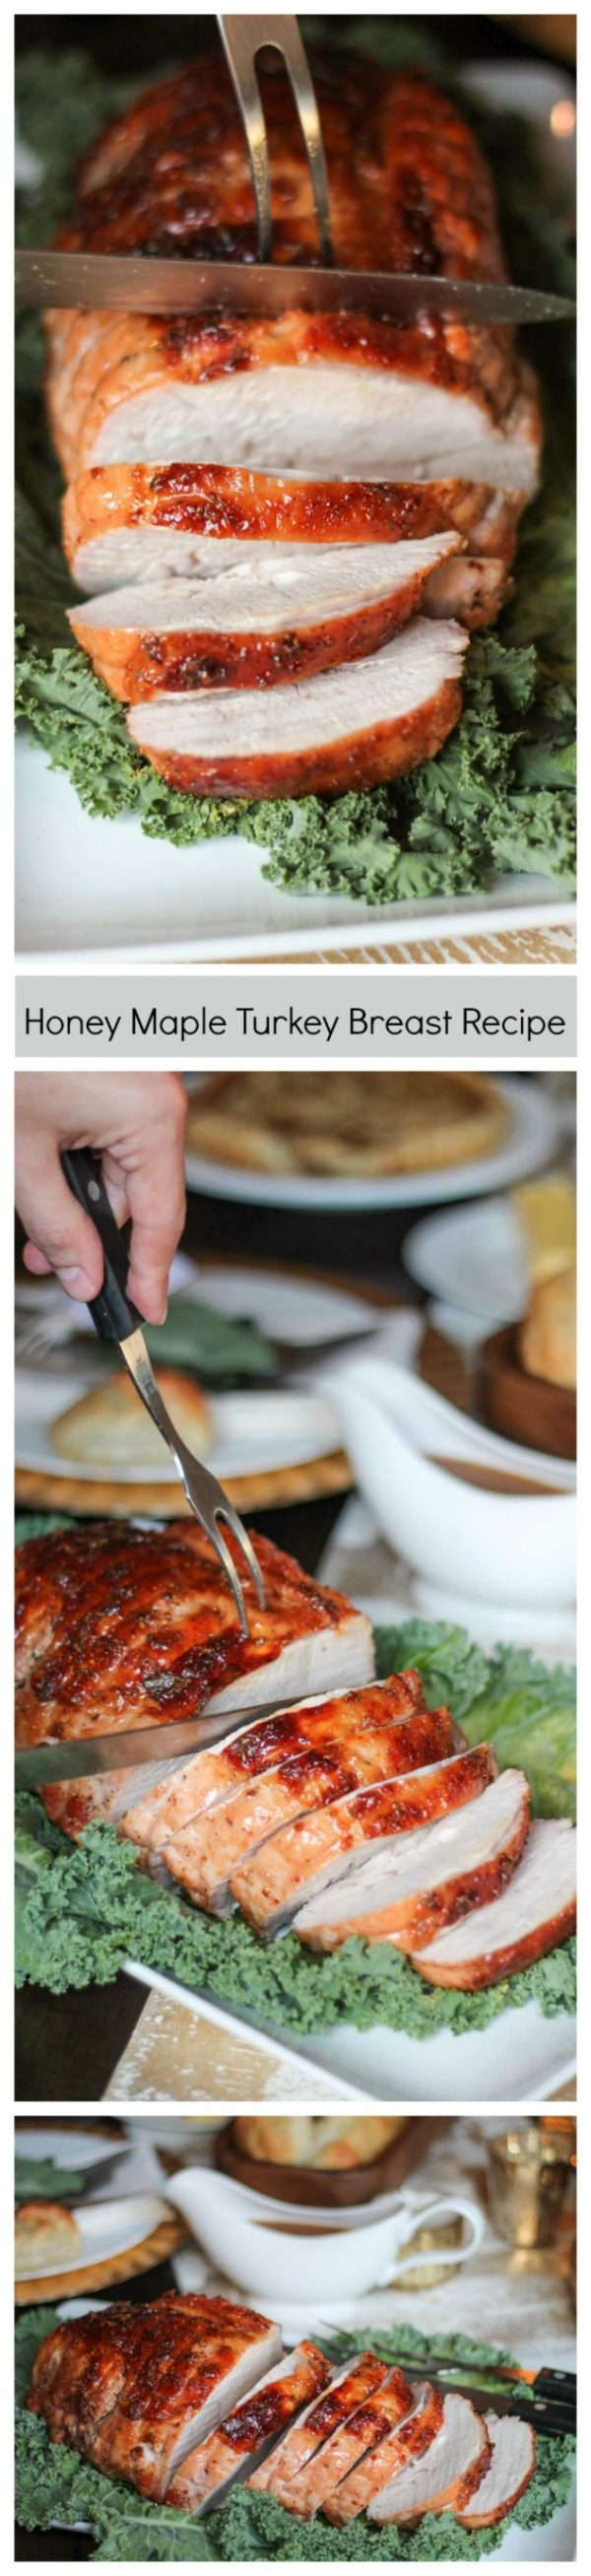 The easiest way to prepare turkey on Thanksgiving day! This delicious foolproof Honey Maple Turkey Breast recipe will be the star of the show on Thanksgiving.